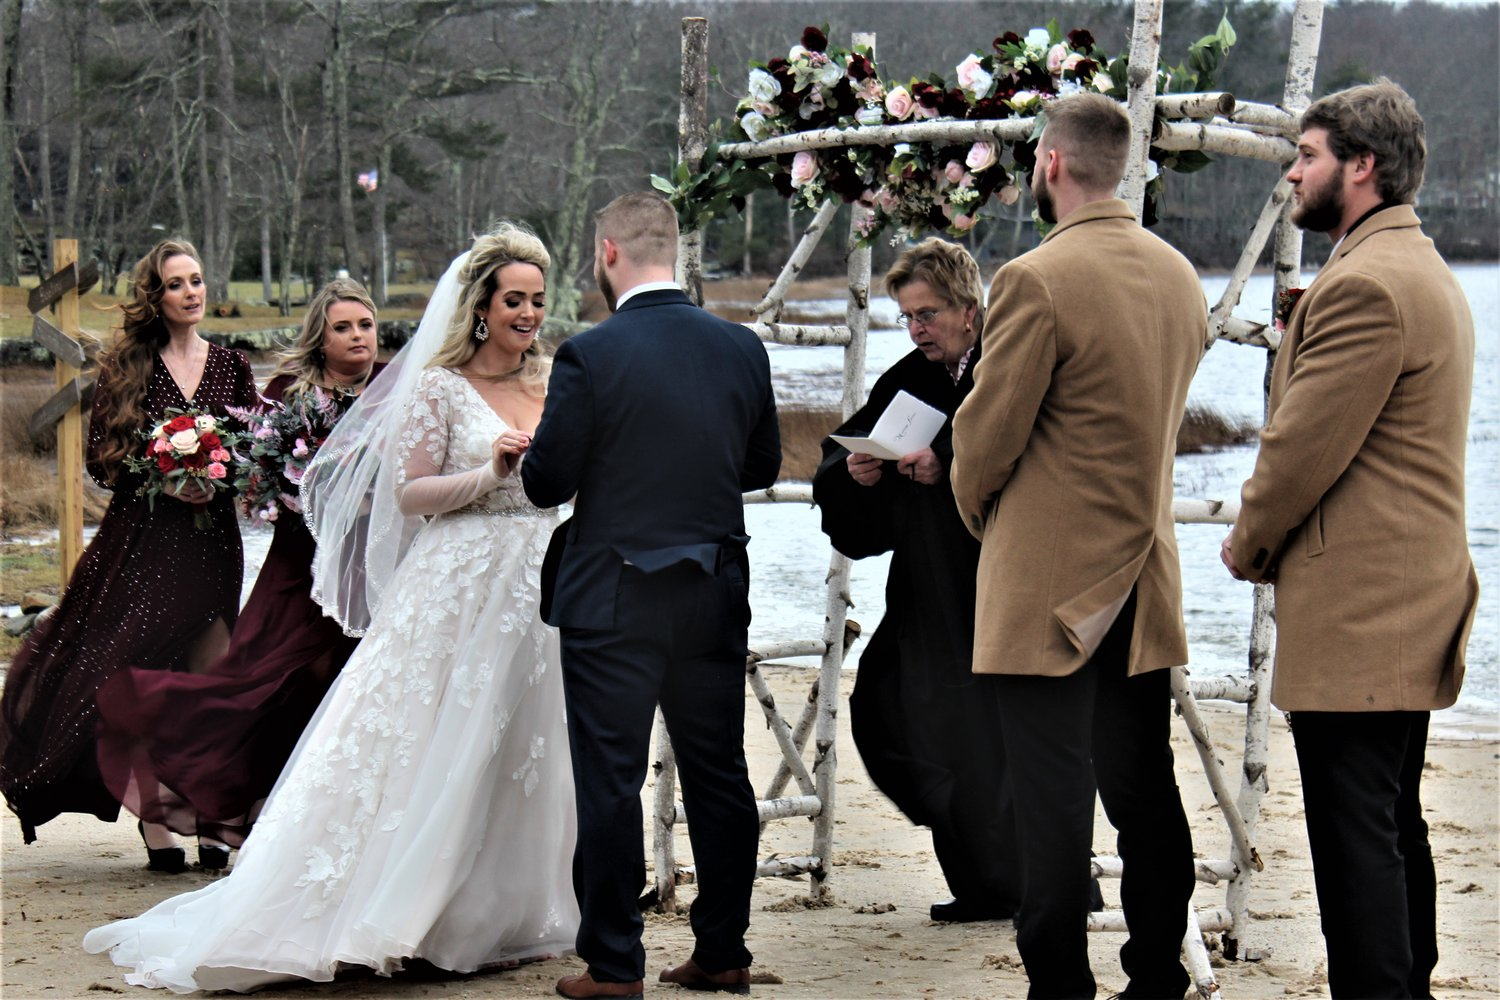 Megan Payne and Joe Gorton ended the year by exchanging wedding vows on New Year's Eve. It was a positive way to end a challenging year.